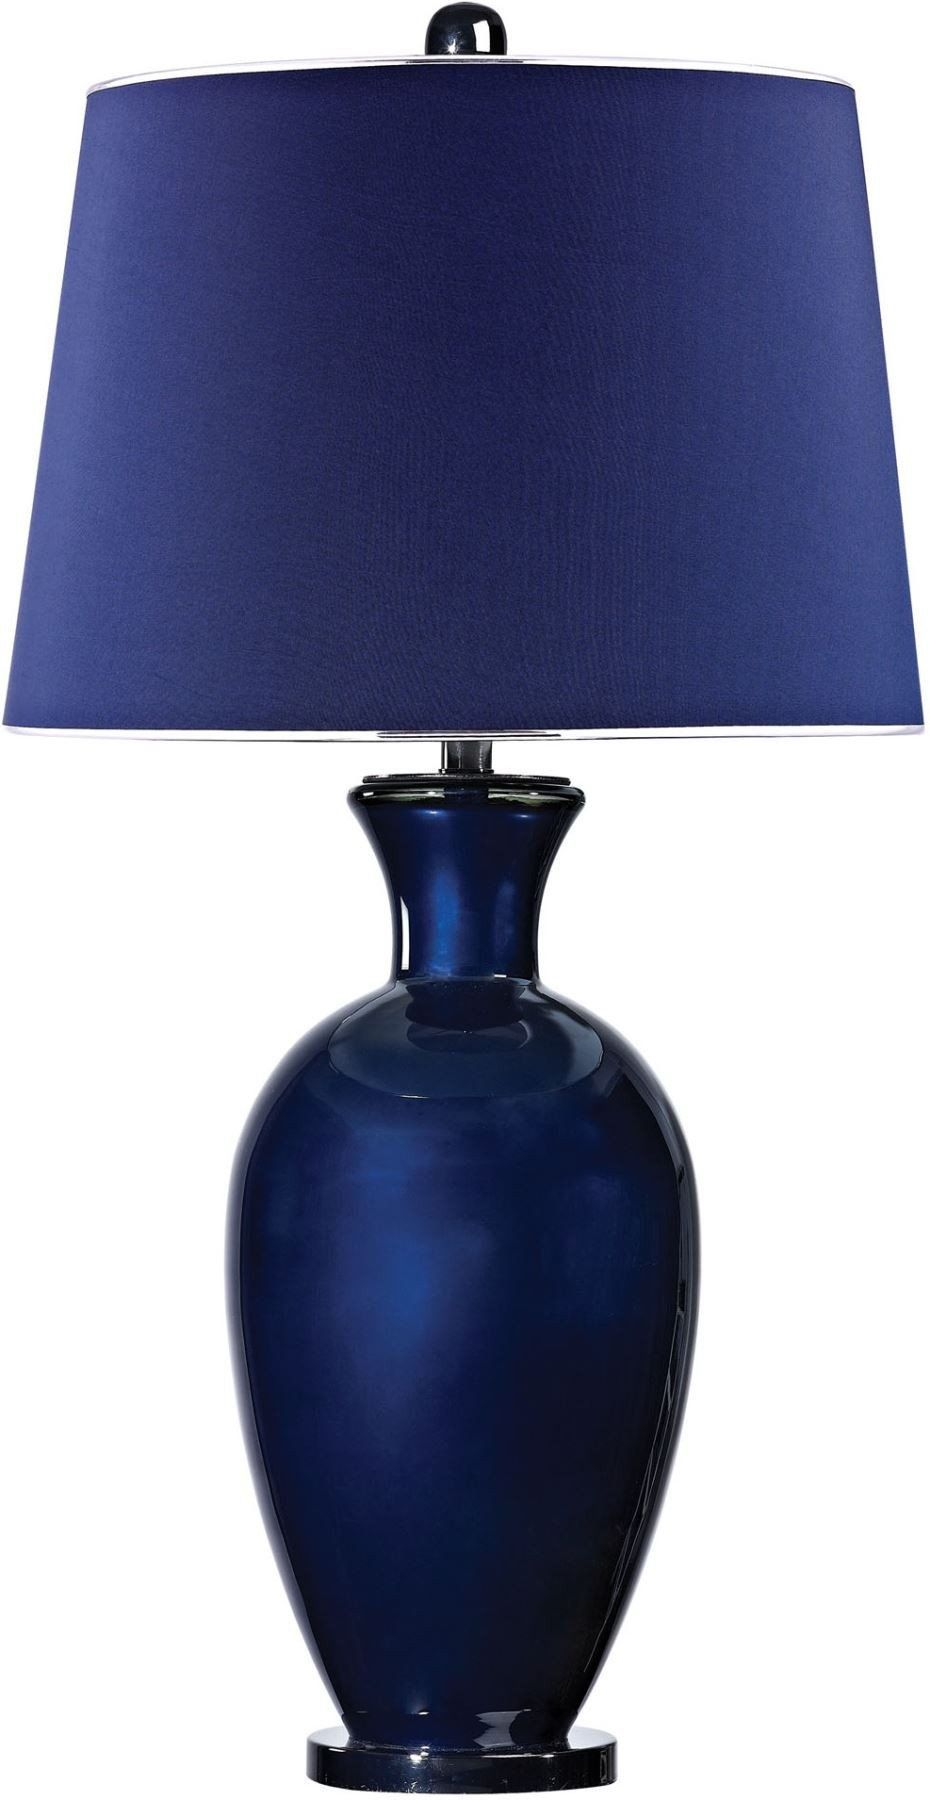 Helensburugh Glass Table Lamp In Navy Blue